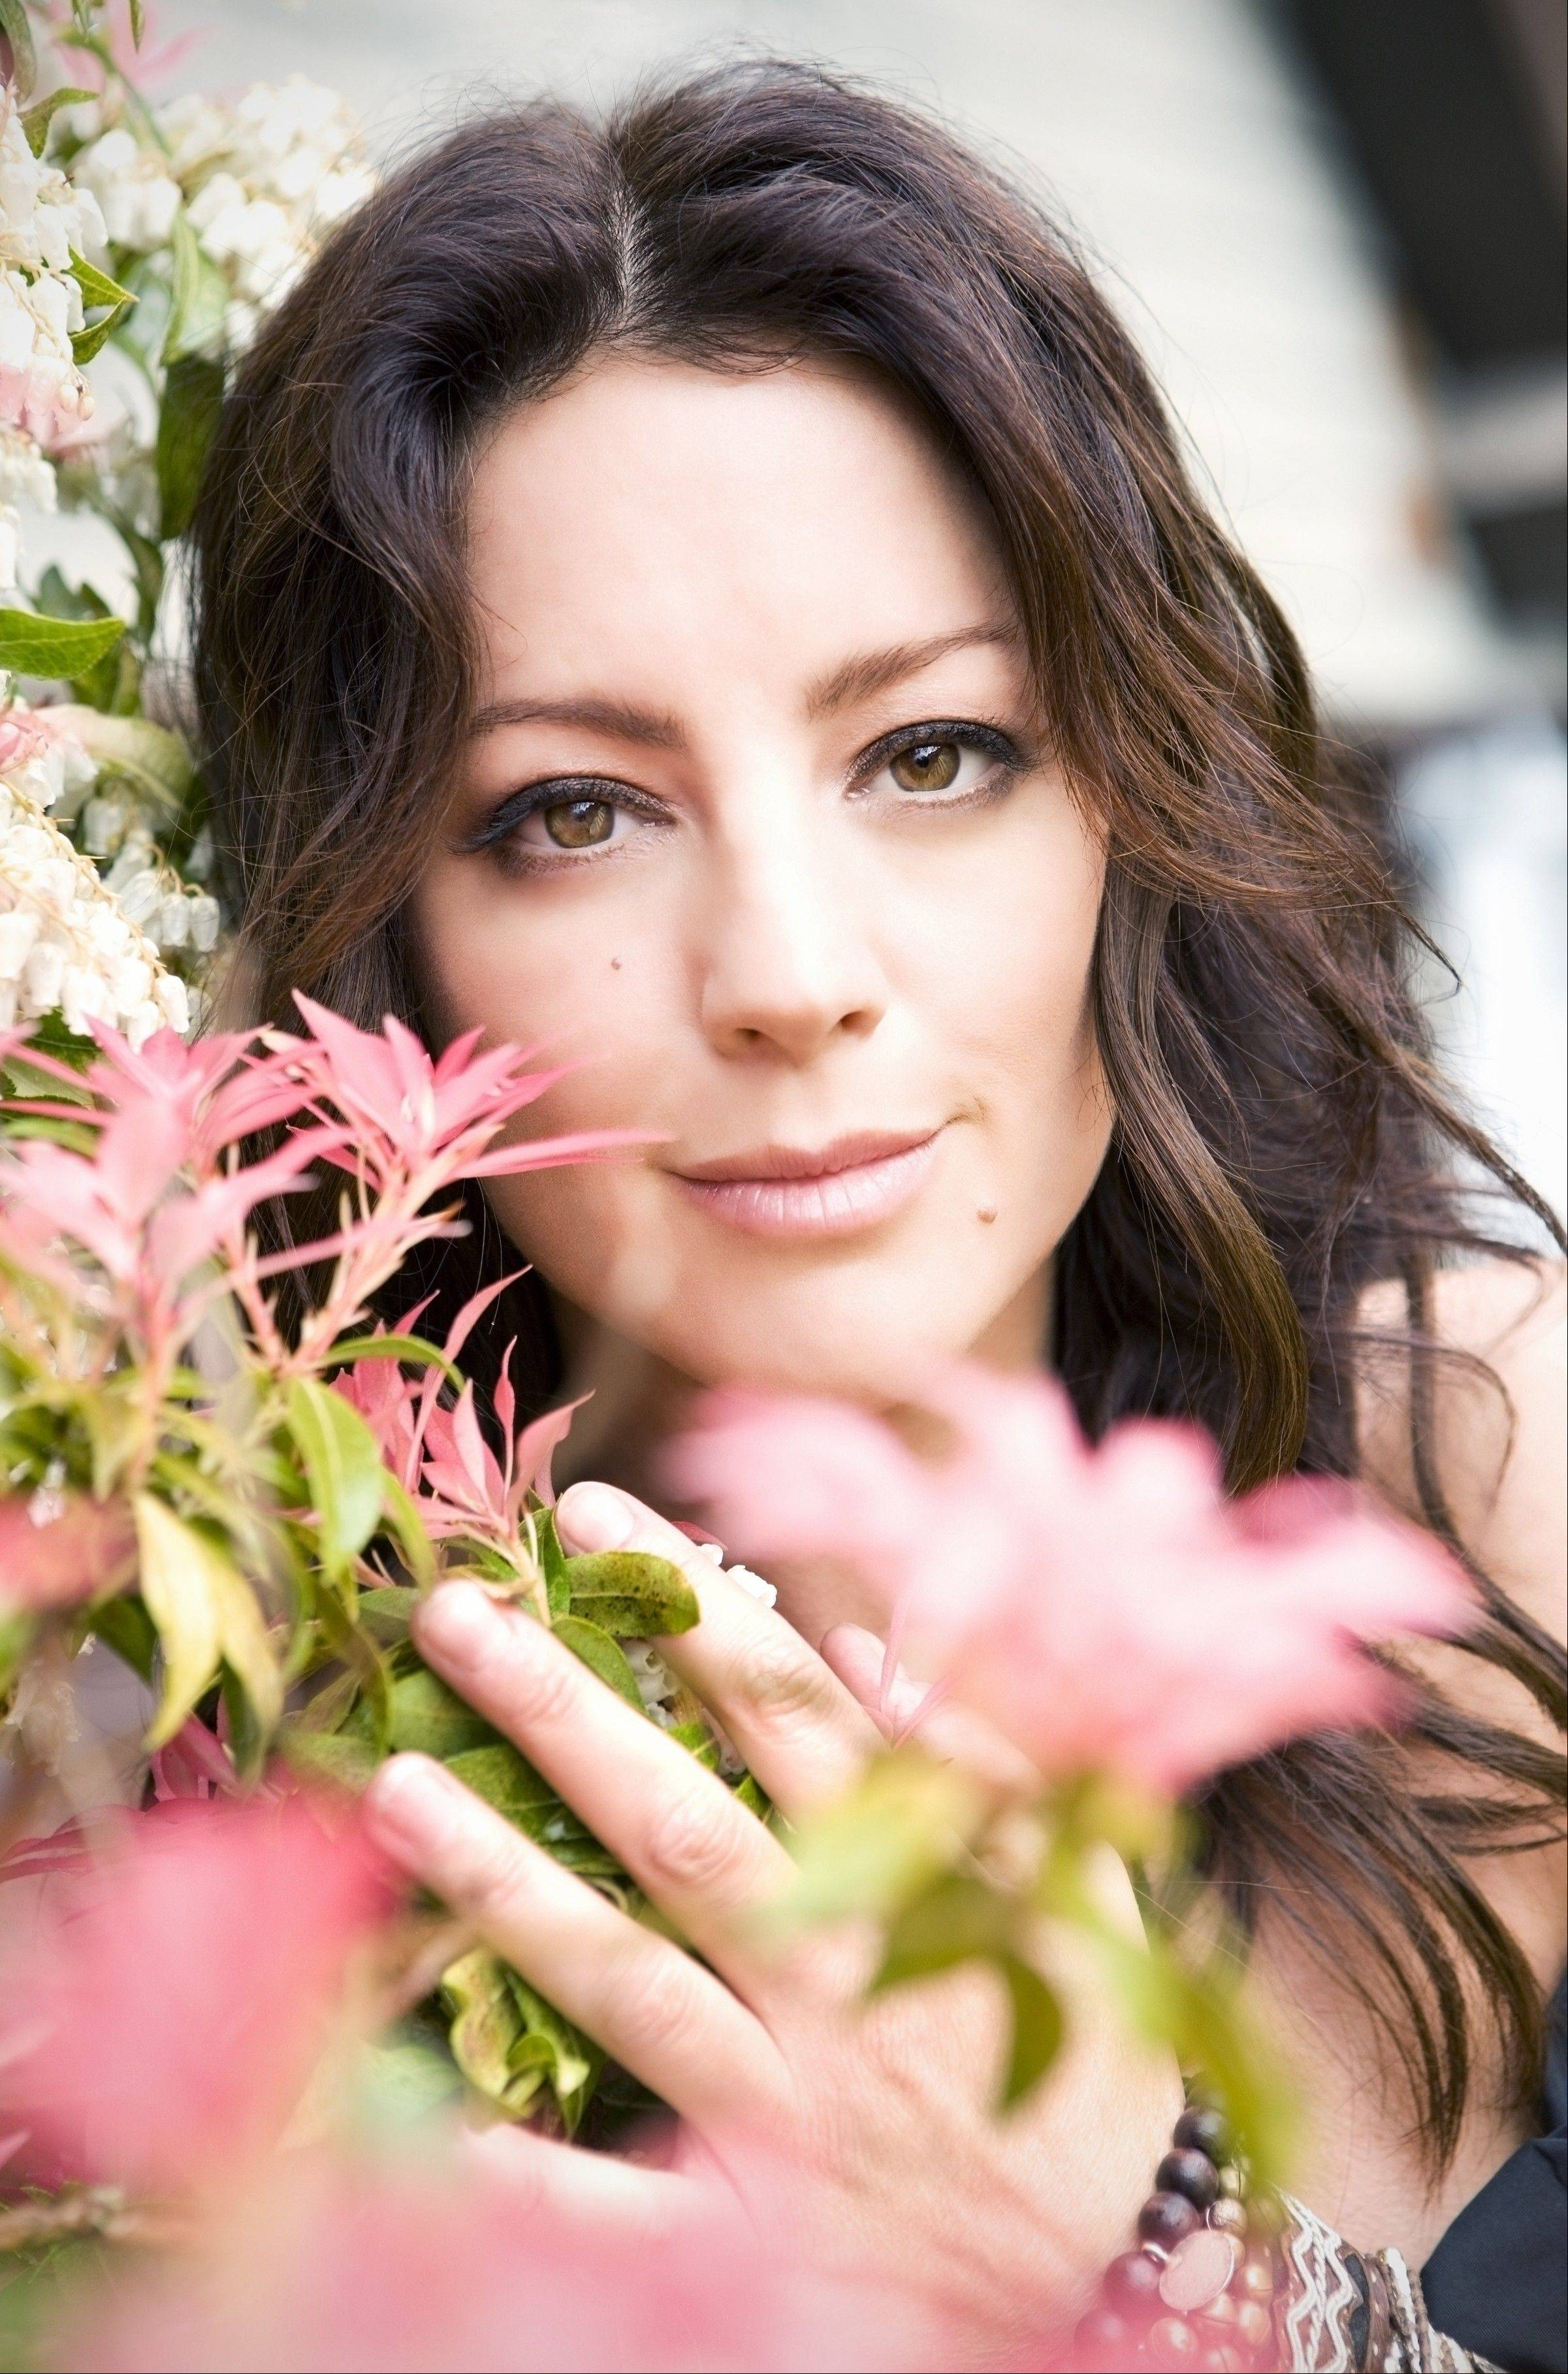 Sarah McLachlan will headline Ravinia on Saturday, June 30.